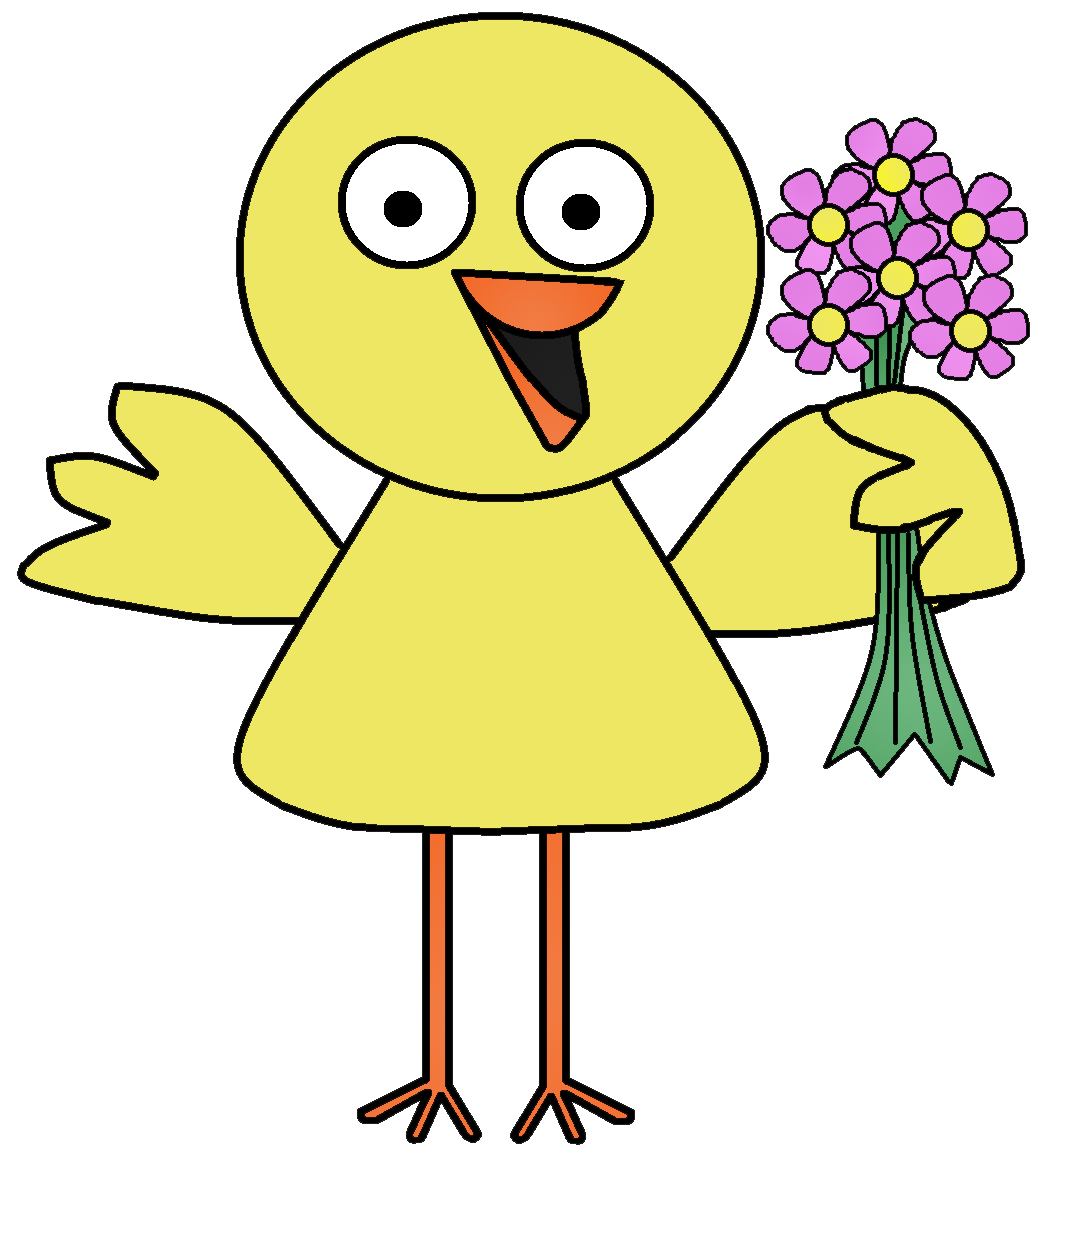 Bird with flower clipart vector download Graphics by Ruth - Spring Birds vector download